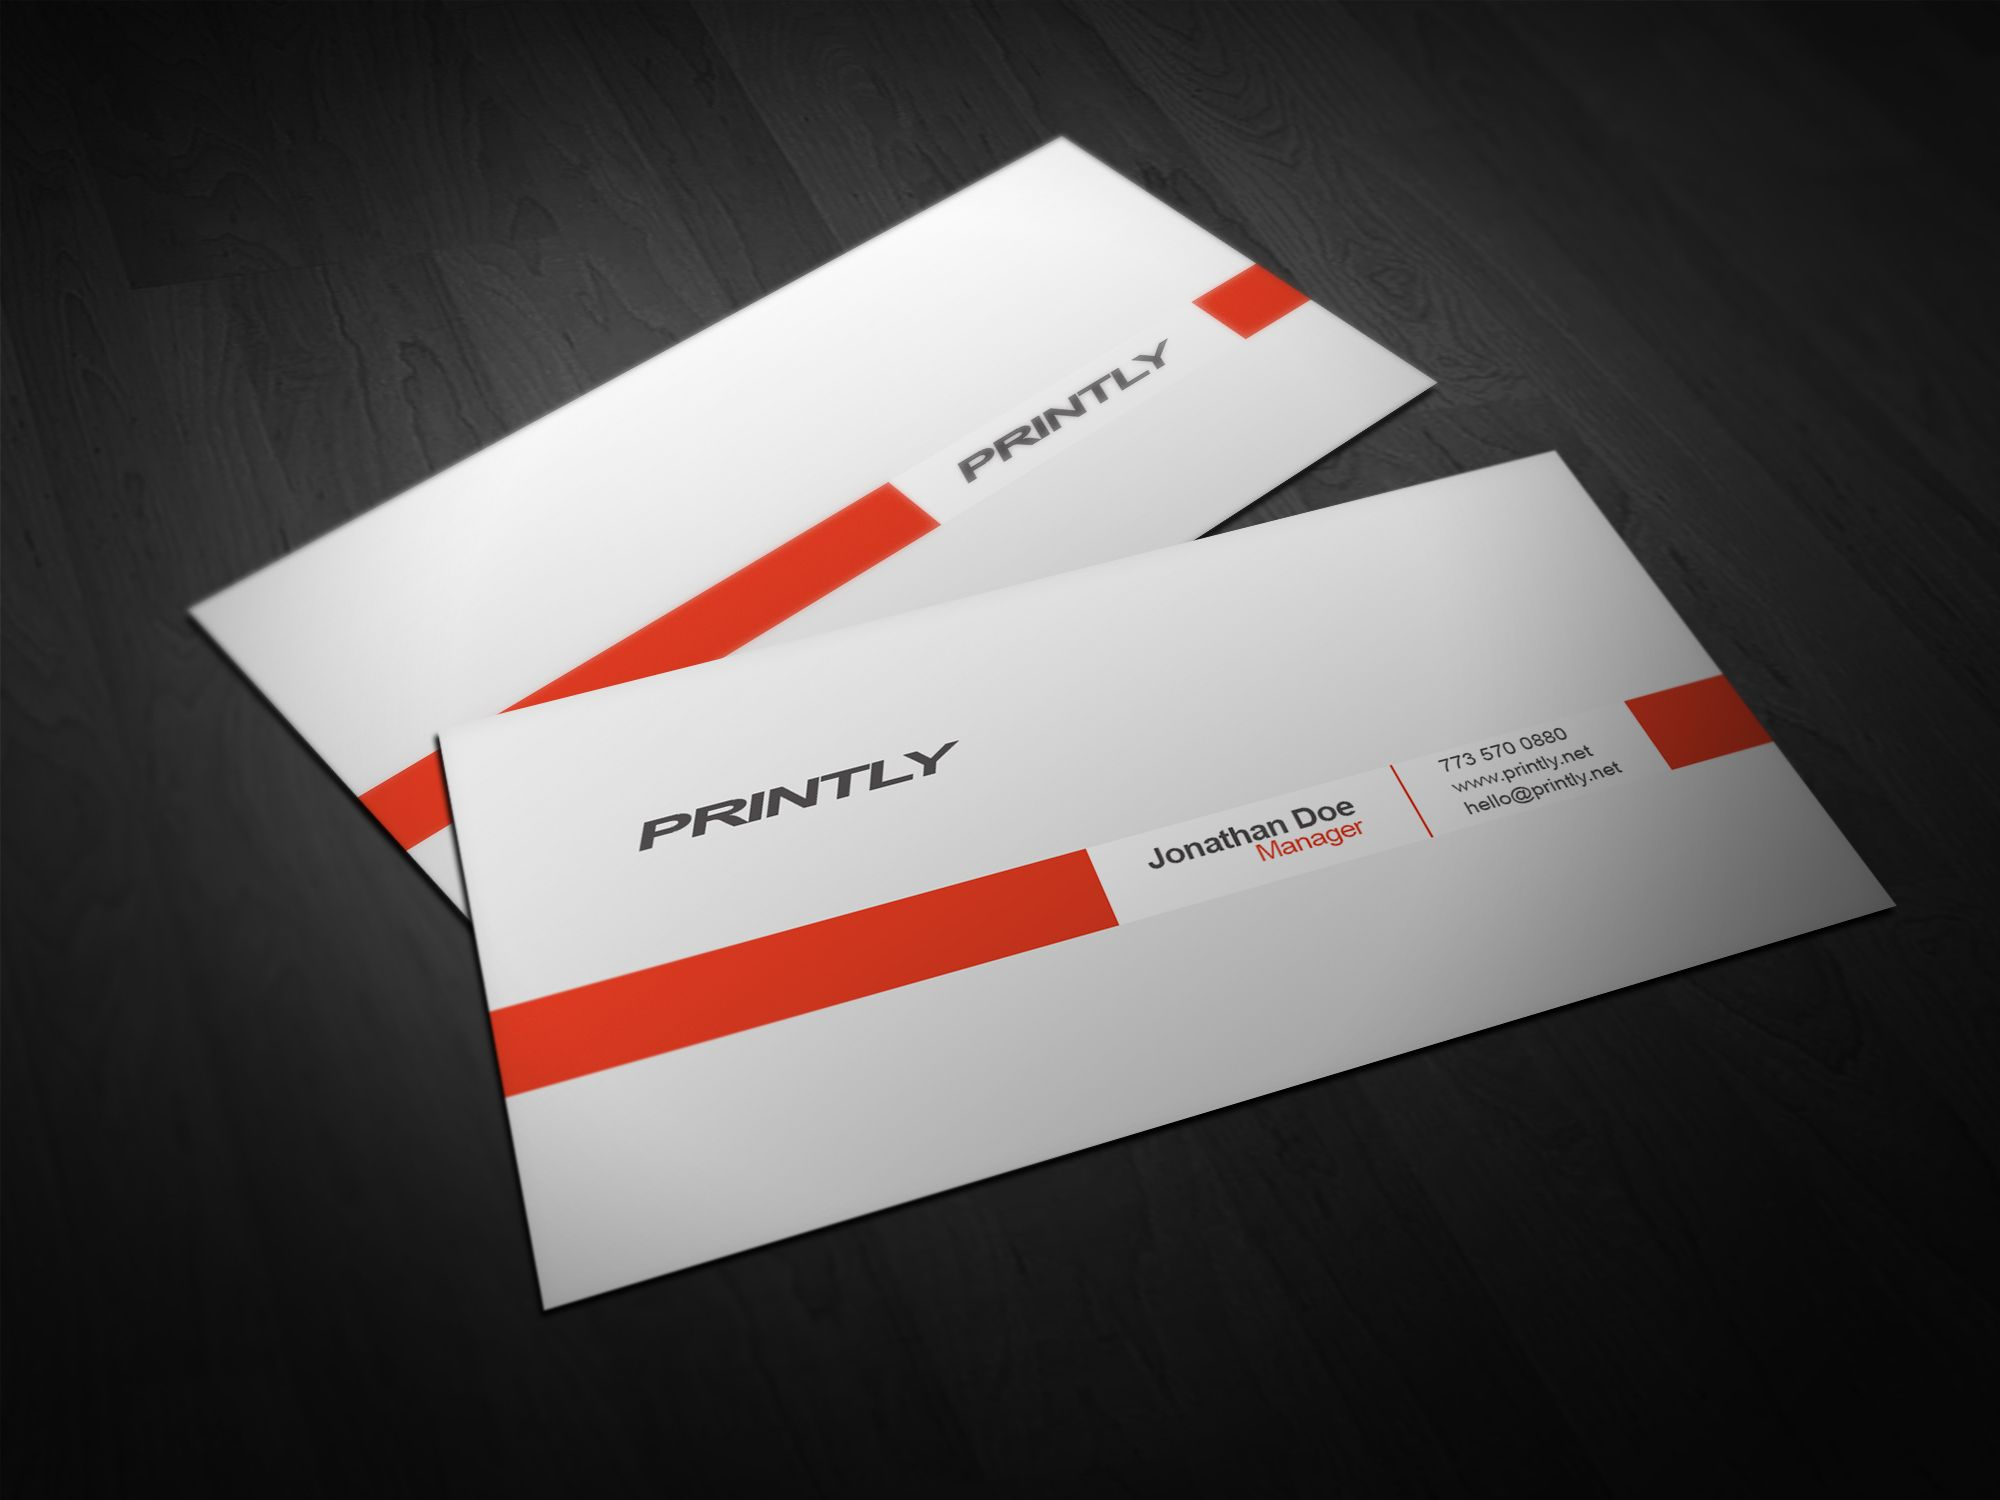 Free Printly PSD Business Card Template   PRINTLY  Free Card Templates For Word